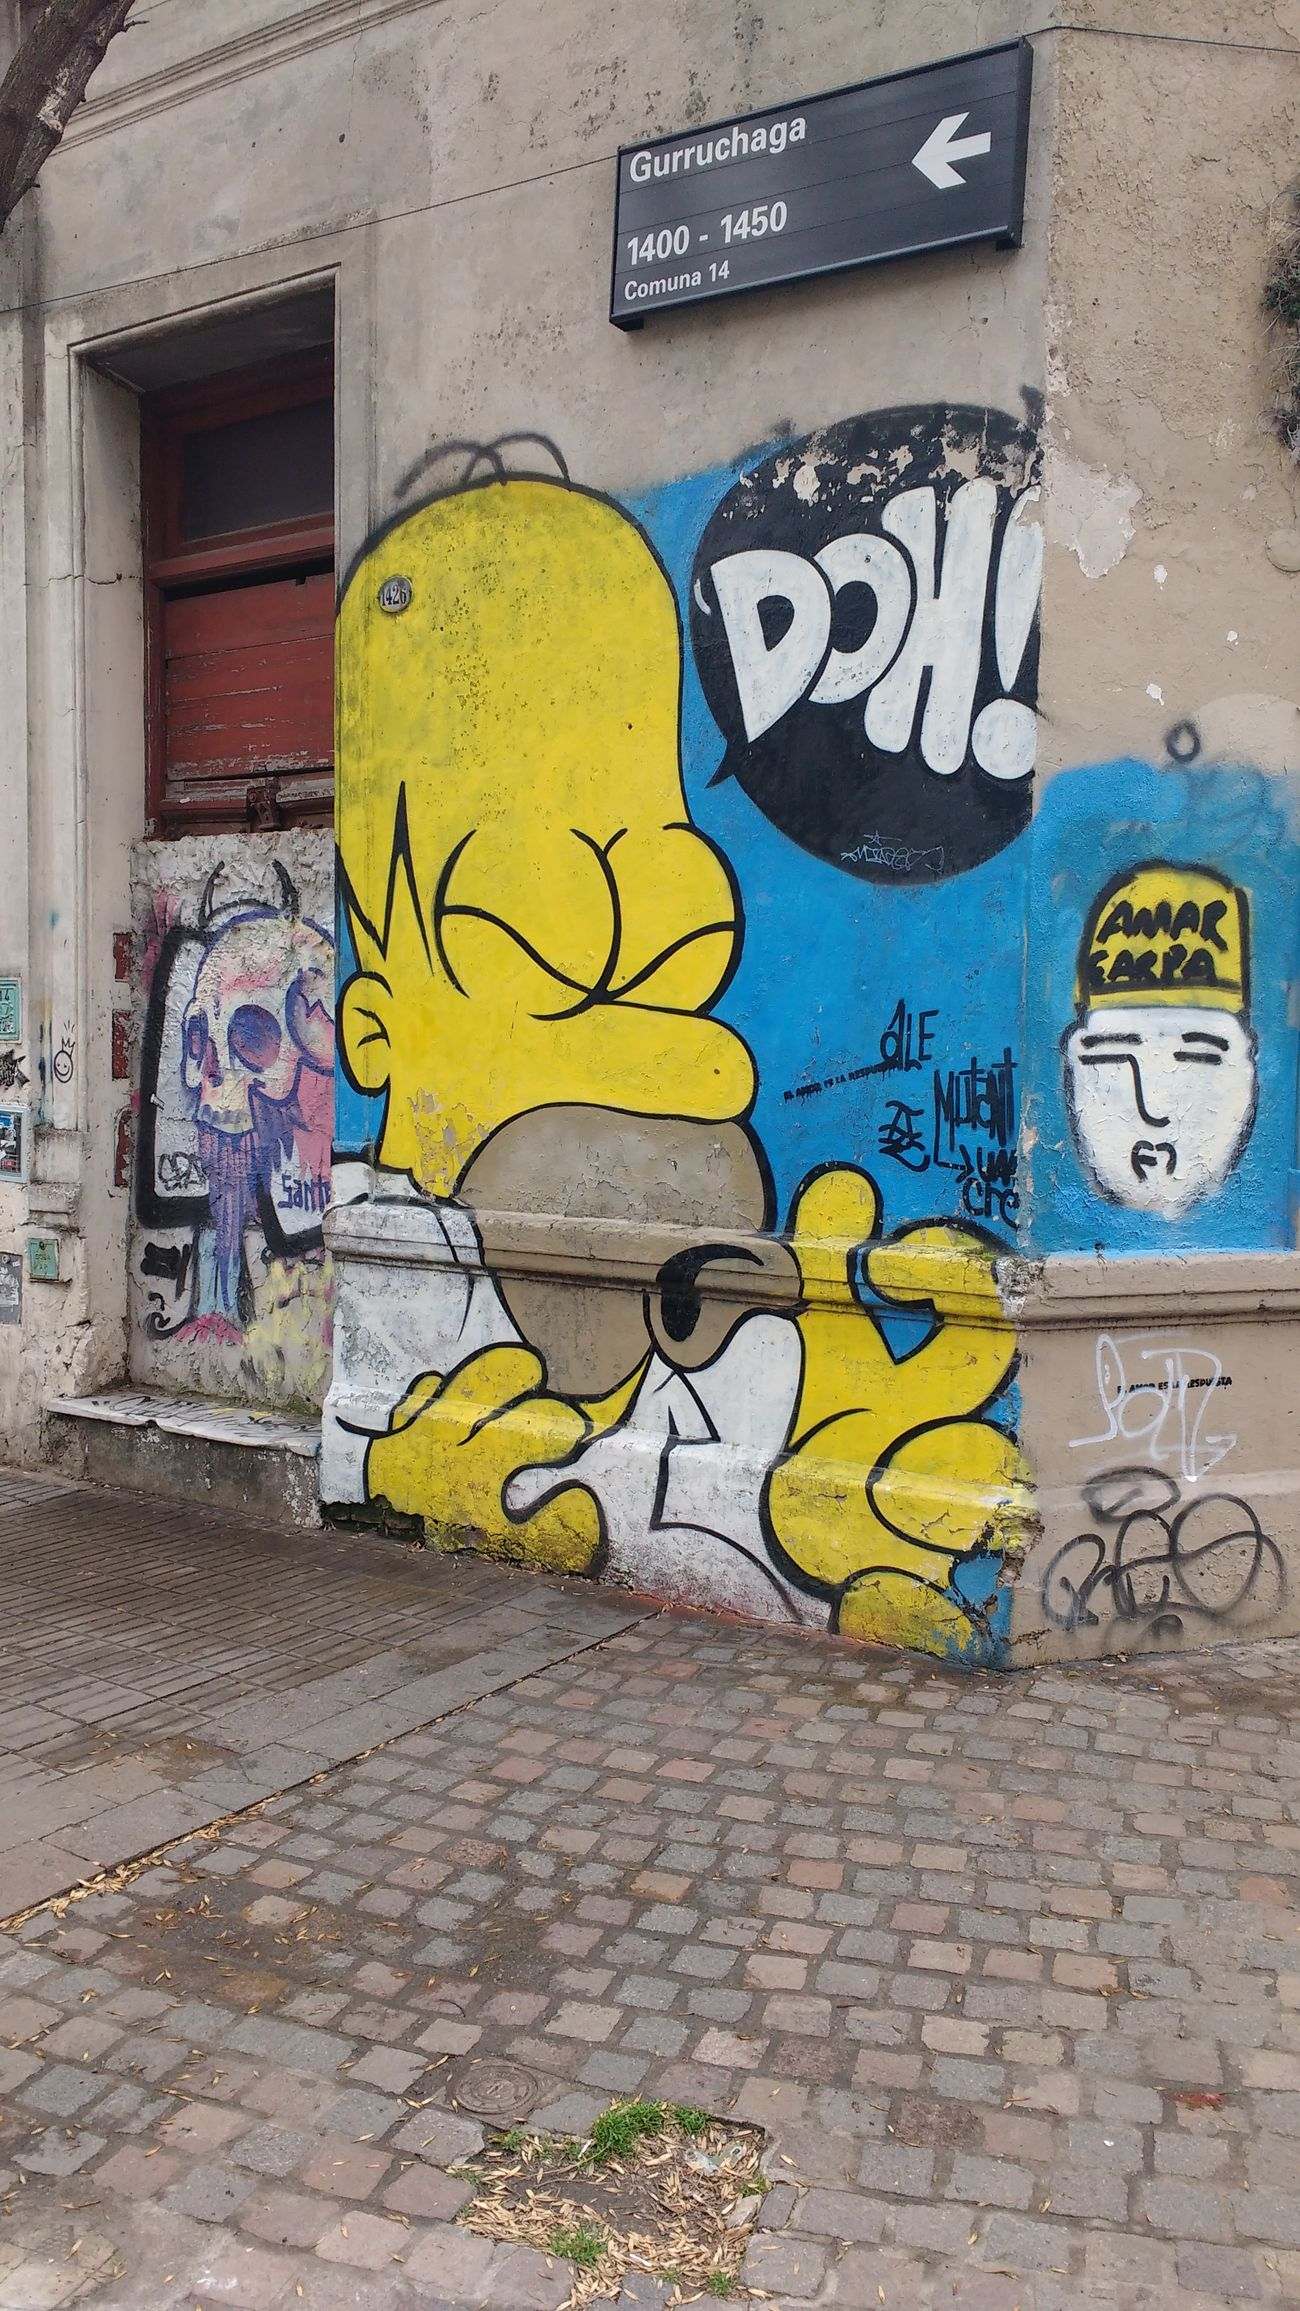 The Simpsons Street Street Photography Streetphotography Street Art Popular Photos Eyeem Colors Art In The Streets Check This Out Light And Shadow Buenos Aires Argentina Photography EyeEm Gallery Graffiti